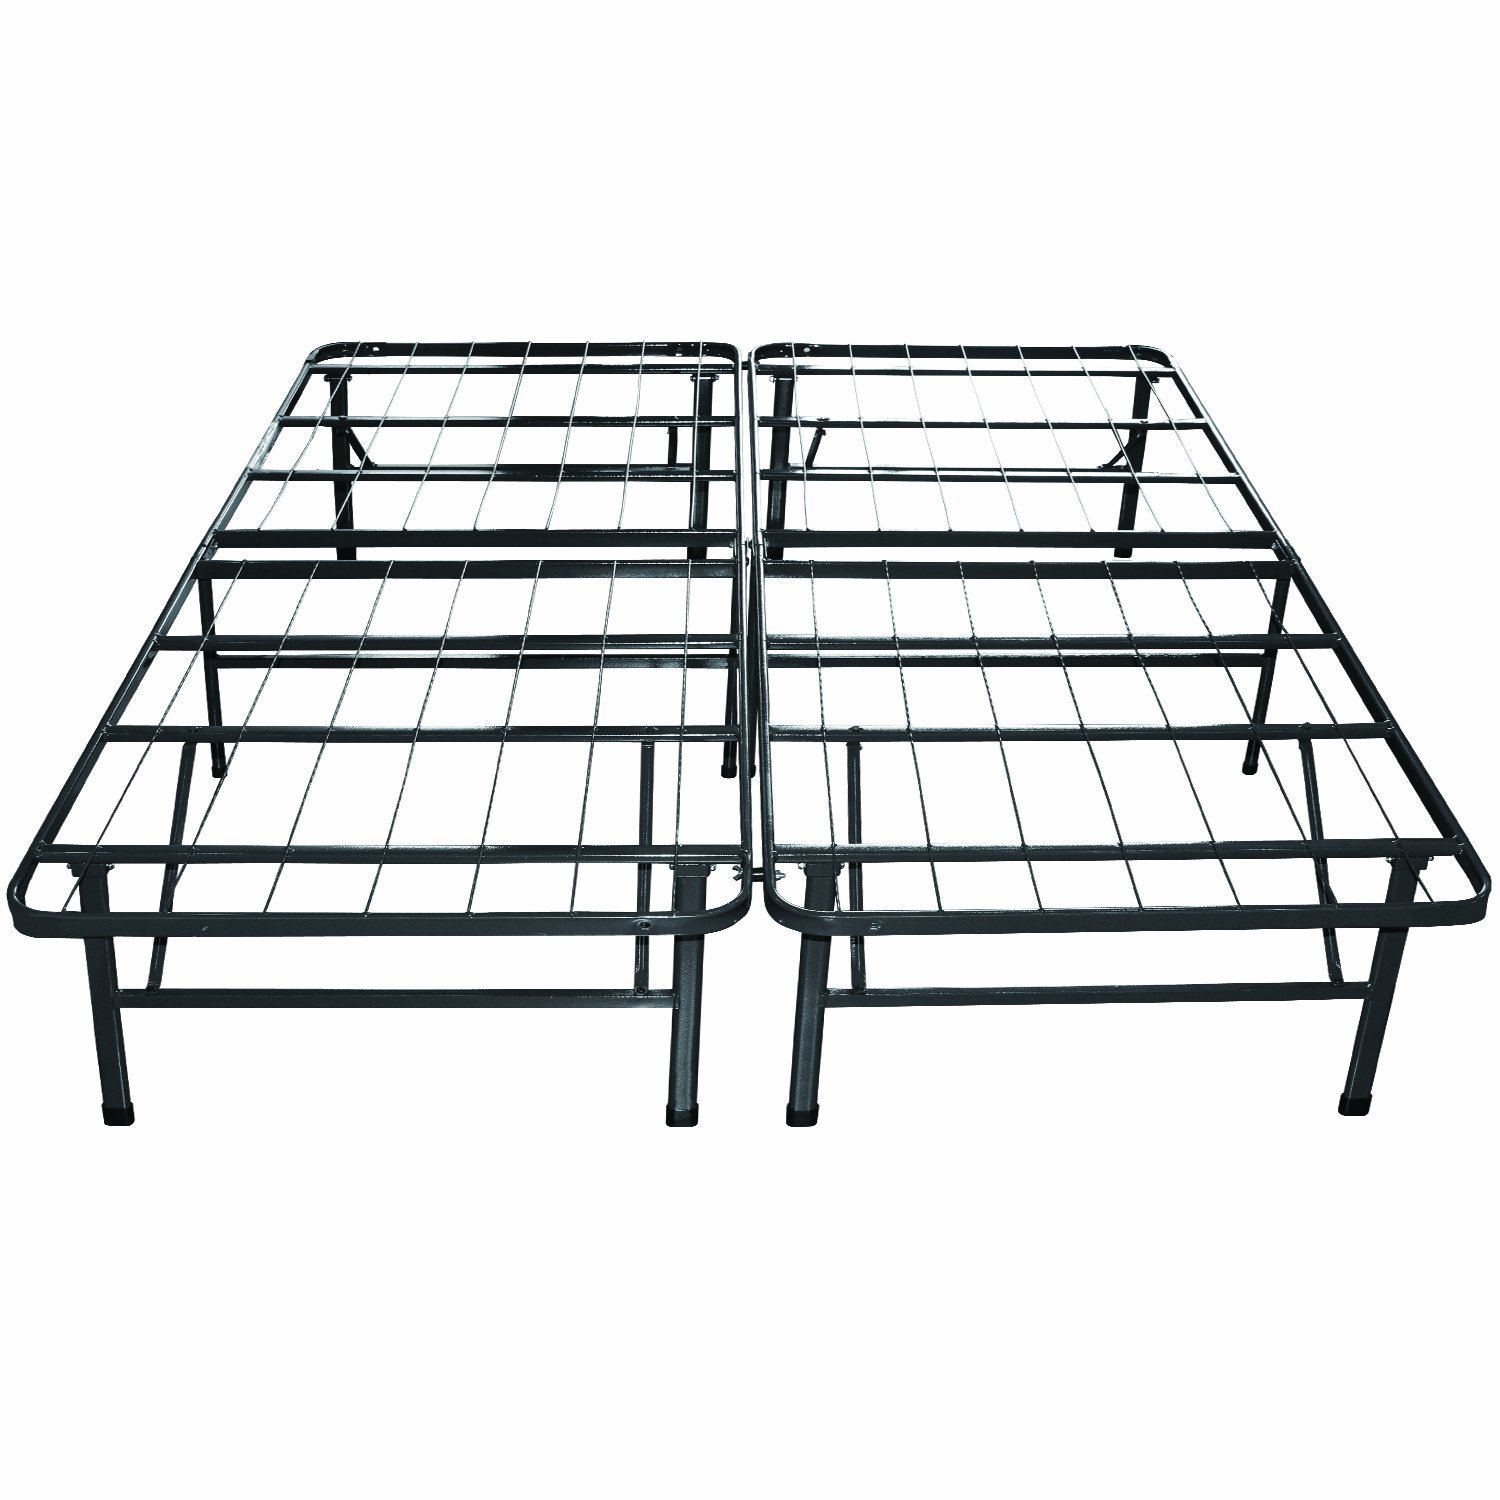 Top 10 California King Bed Frame Reviews – Your Guide to Choosing the Best One in 2020